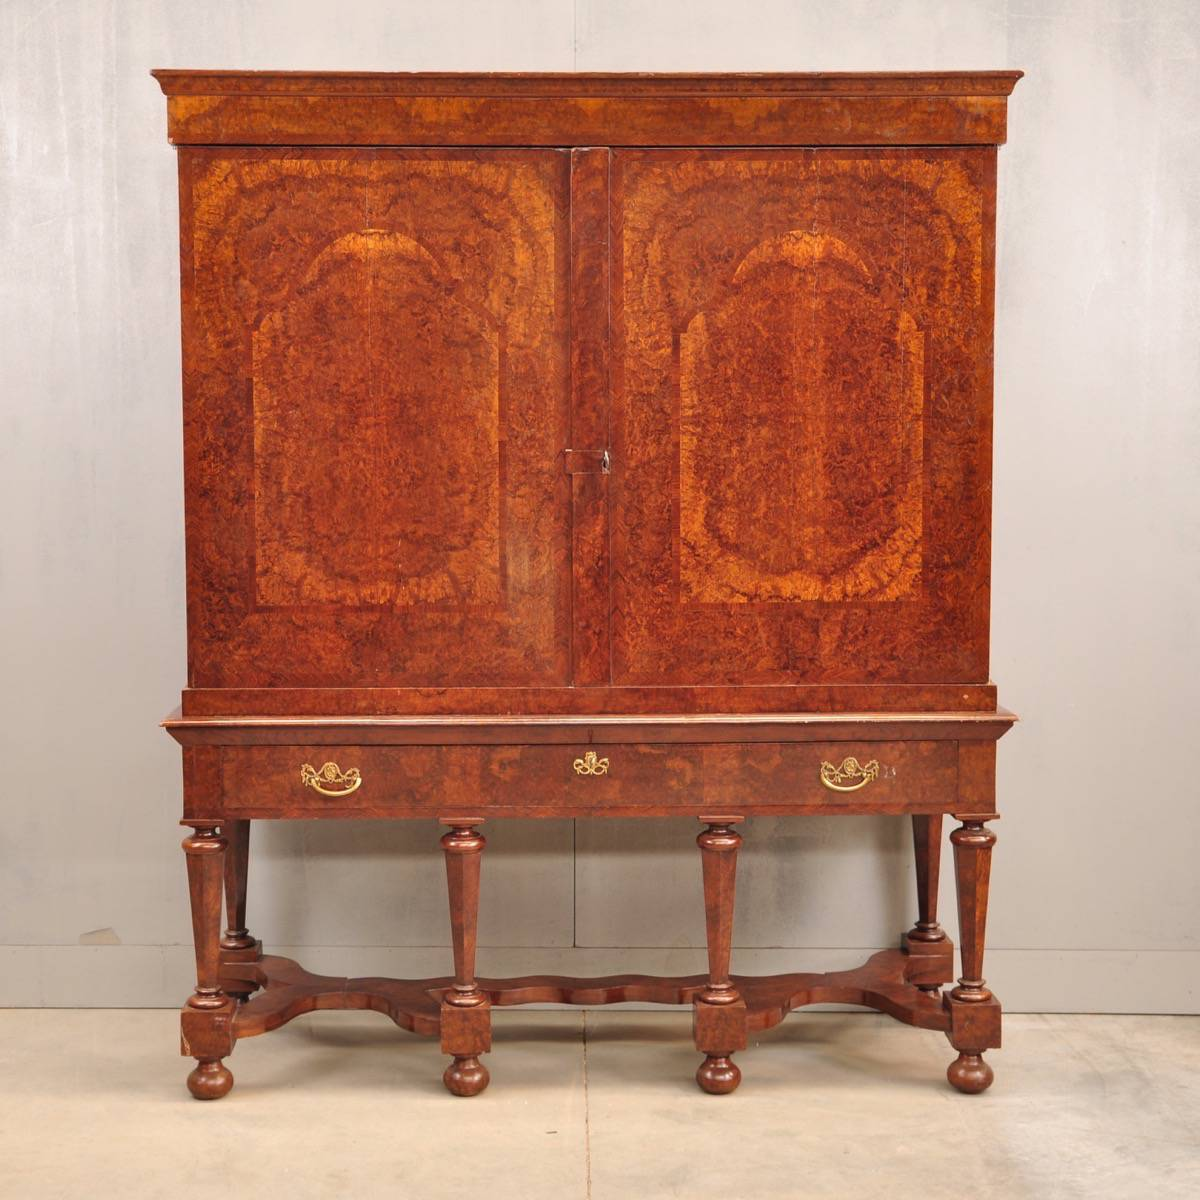 Antique walnut dutch cabinet - Antique Walnut Dutch Cabinet De Grande Antique Furniture